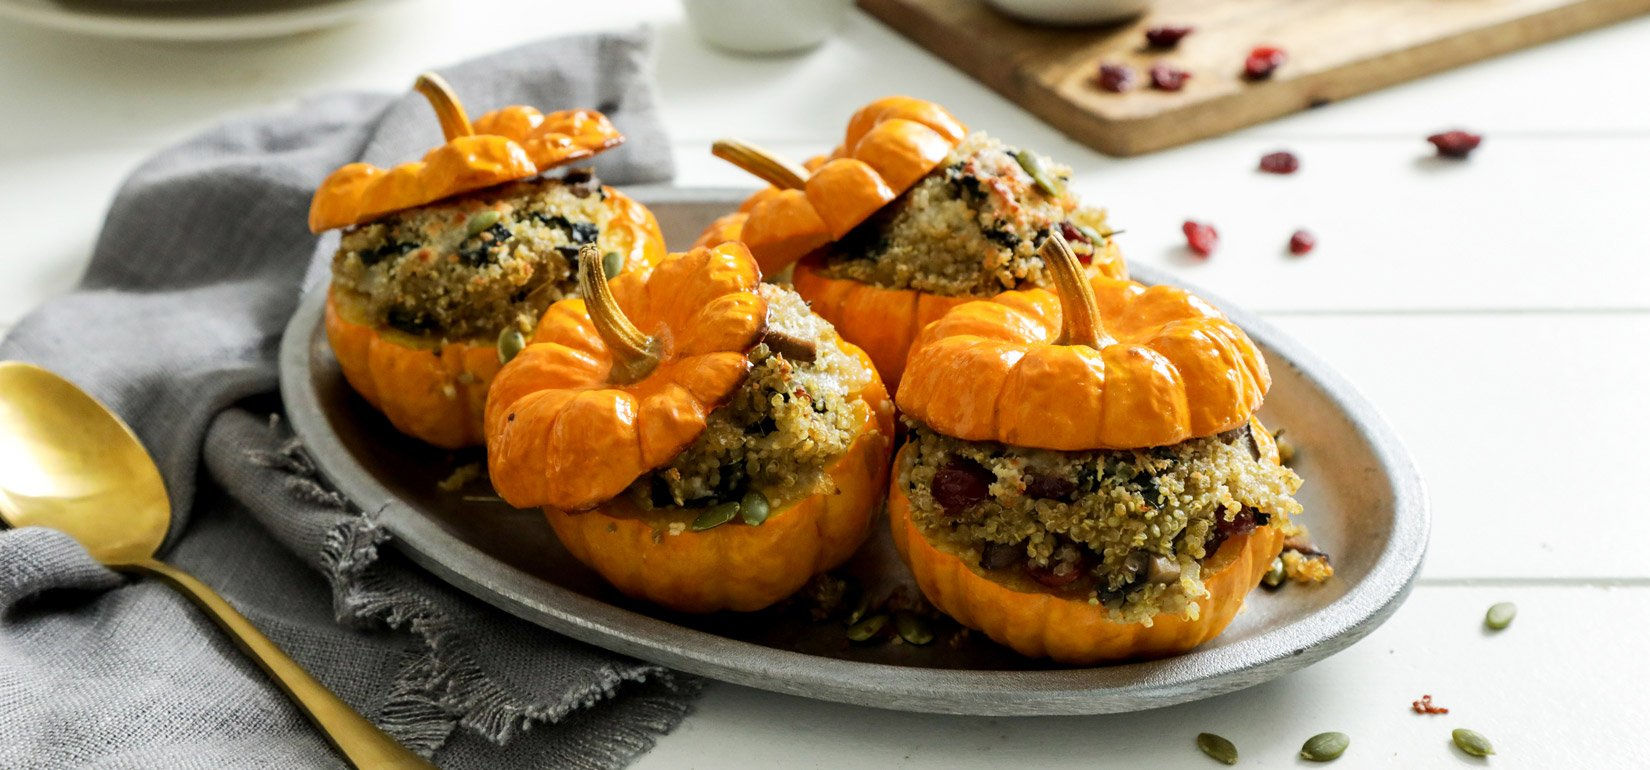 Organic Savory Stuffed Mini Pumpkins Recipe